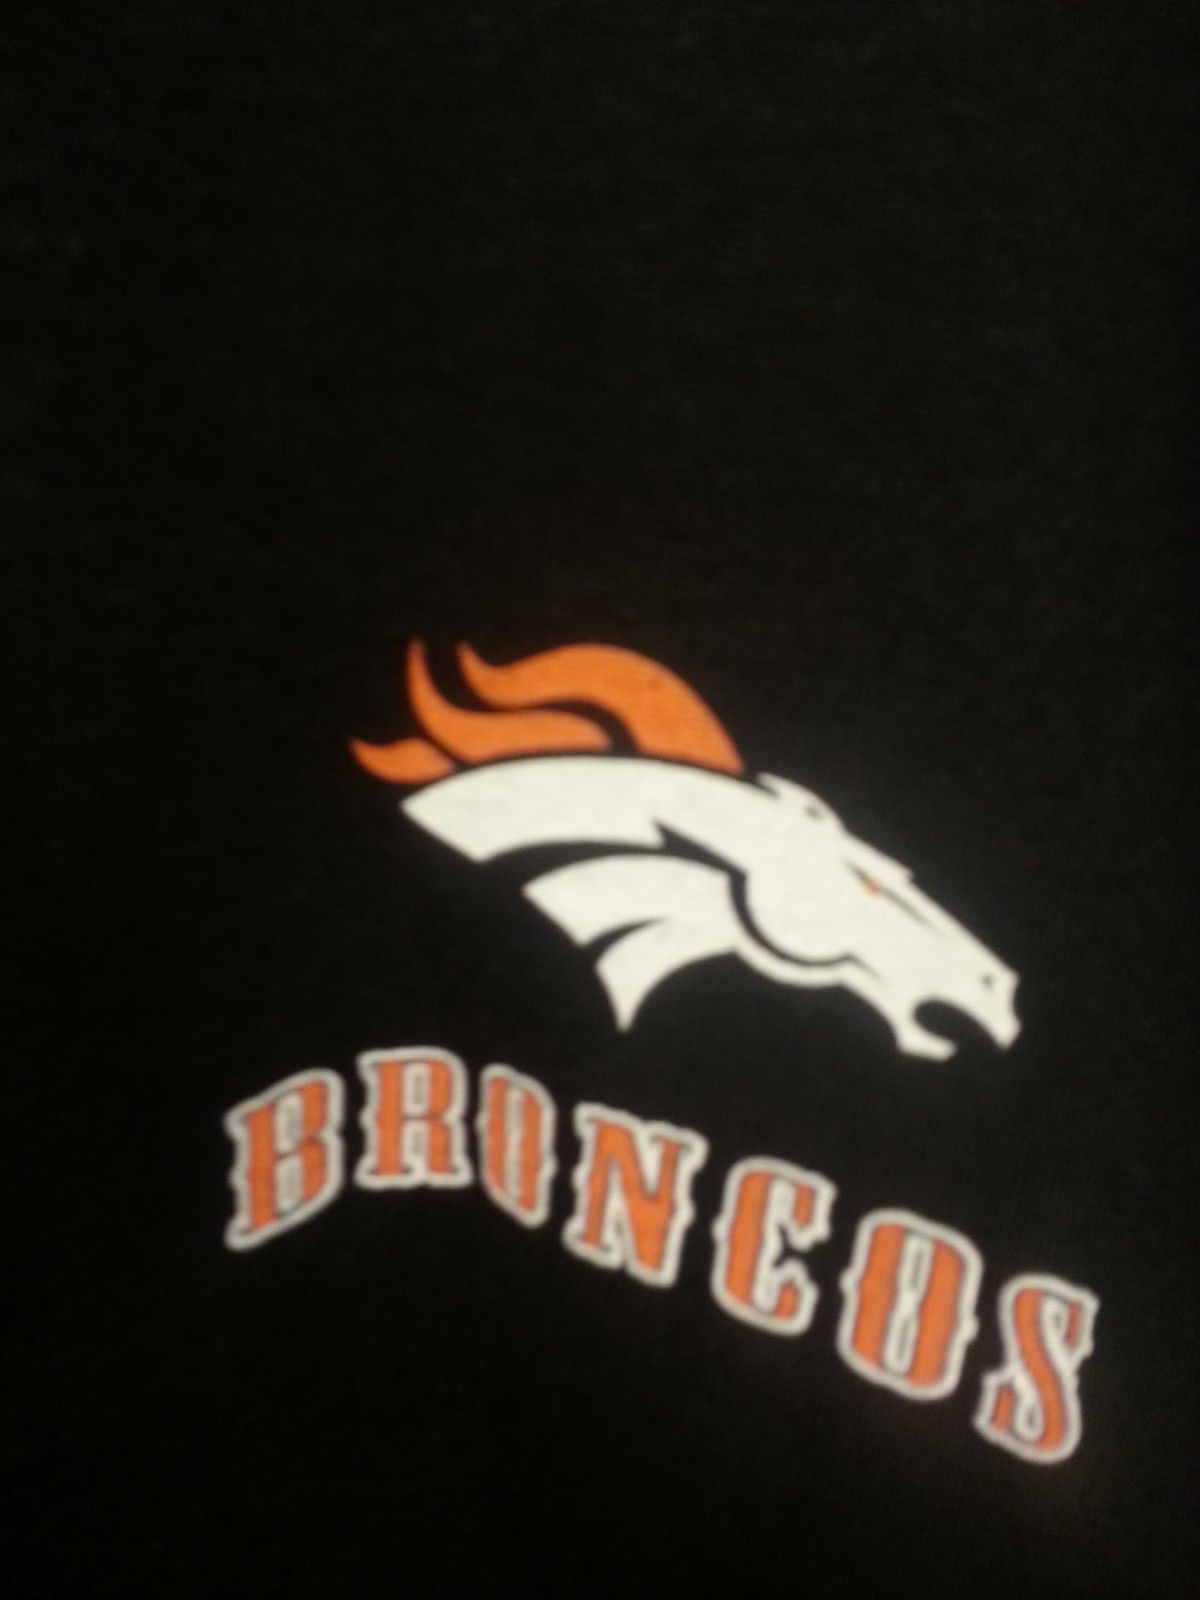 DENVER BRONCOS  New with tags RUNNING BACK  T-Shirt BLACK shirt NFL image 3